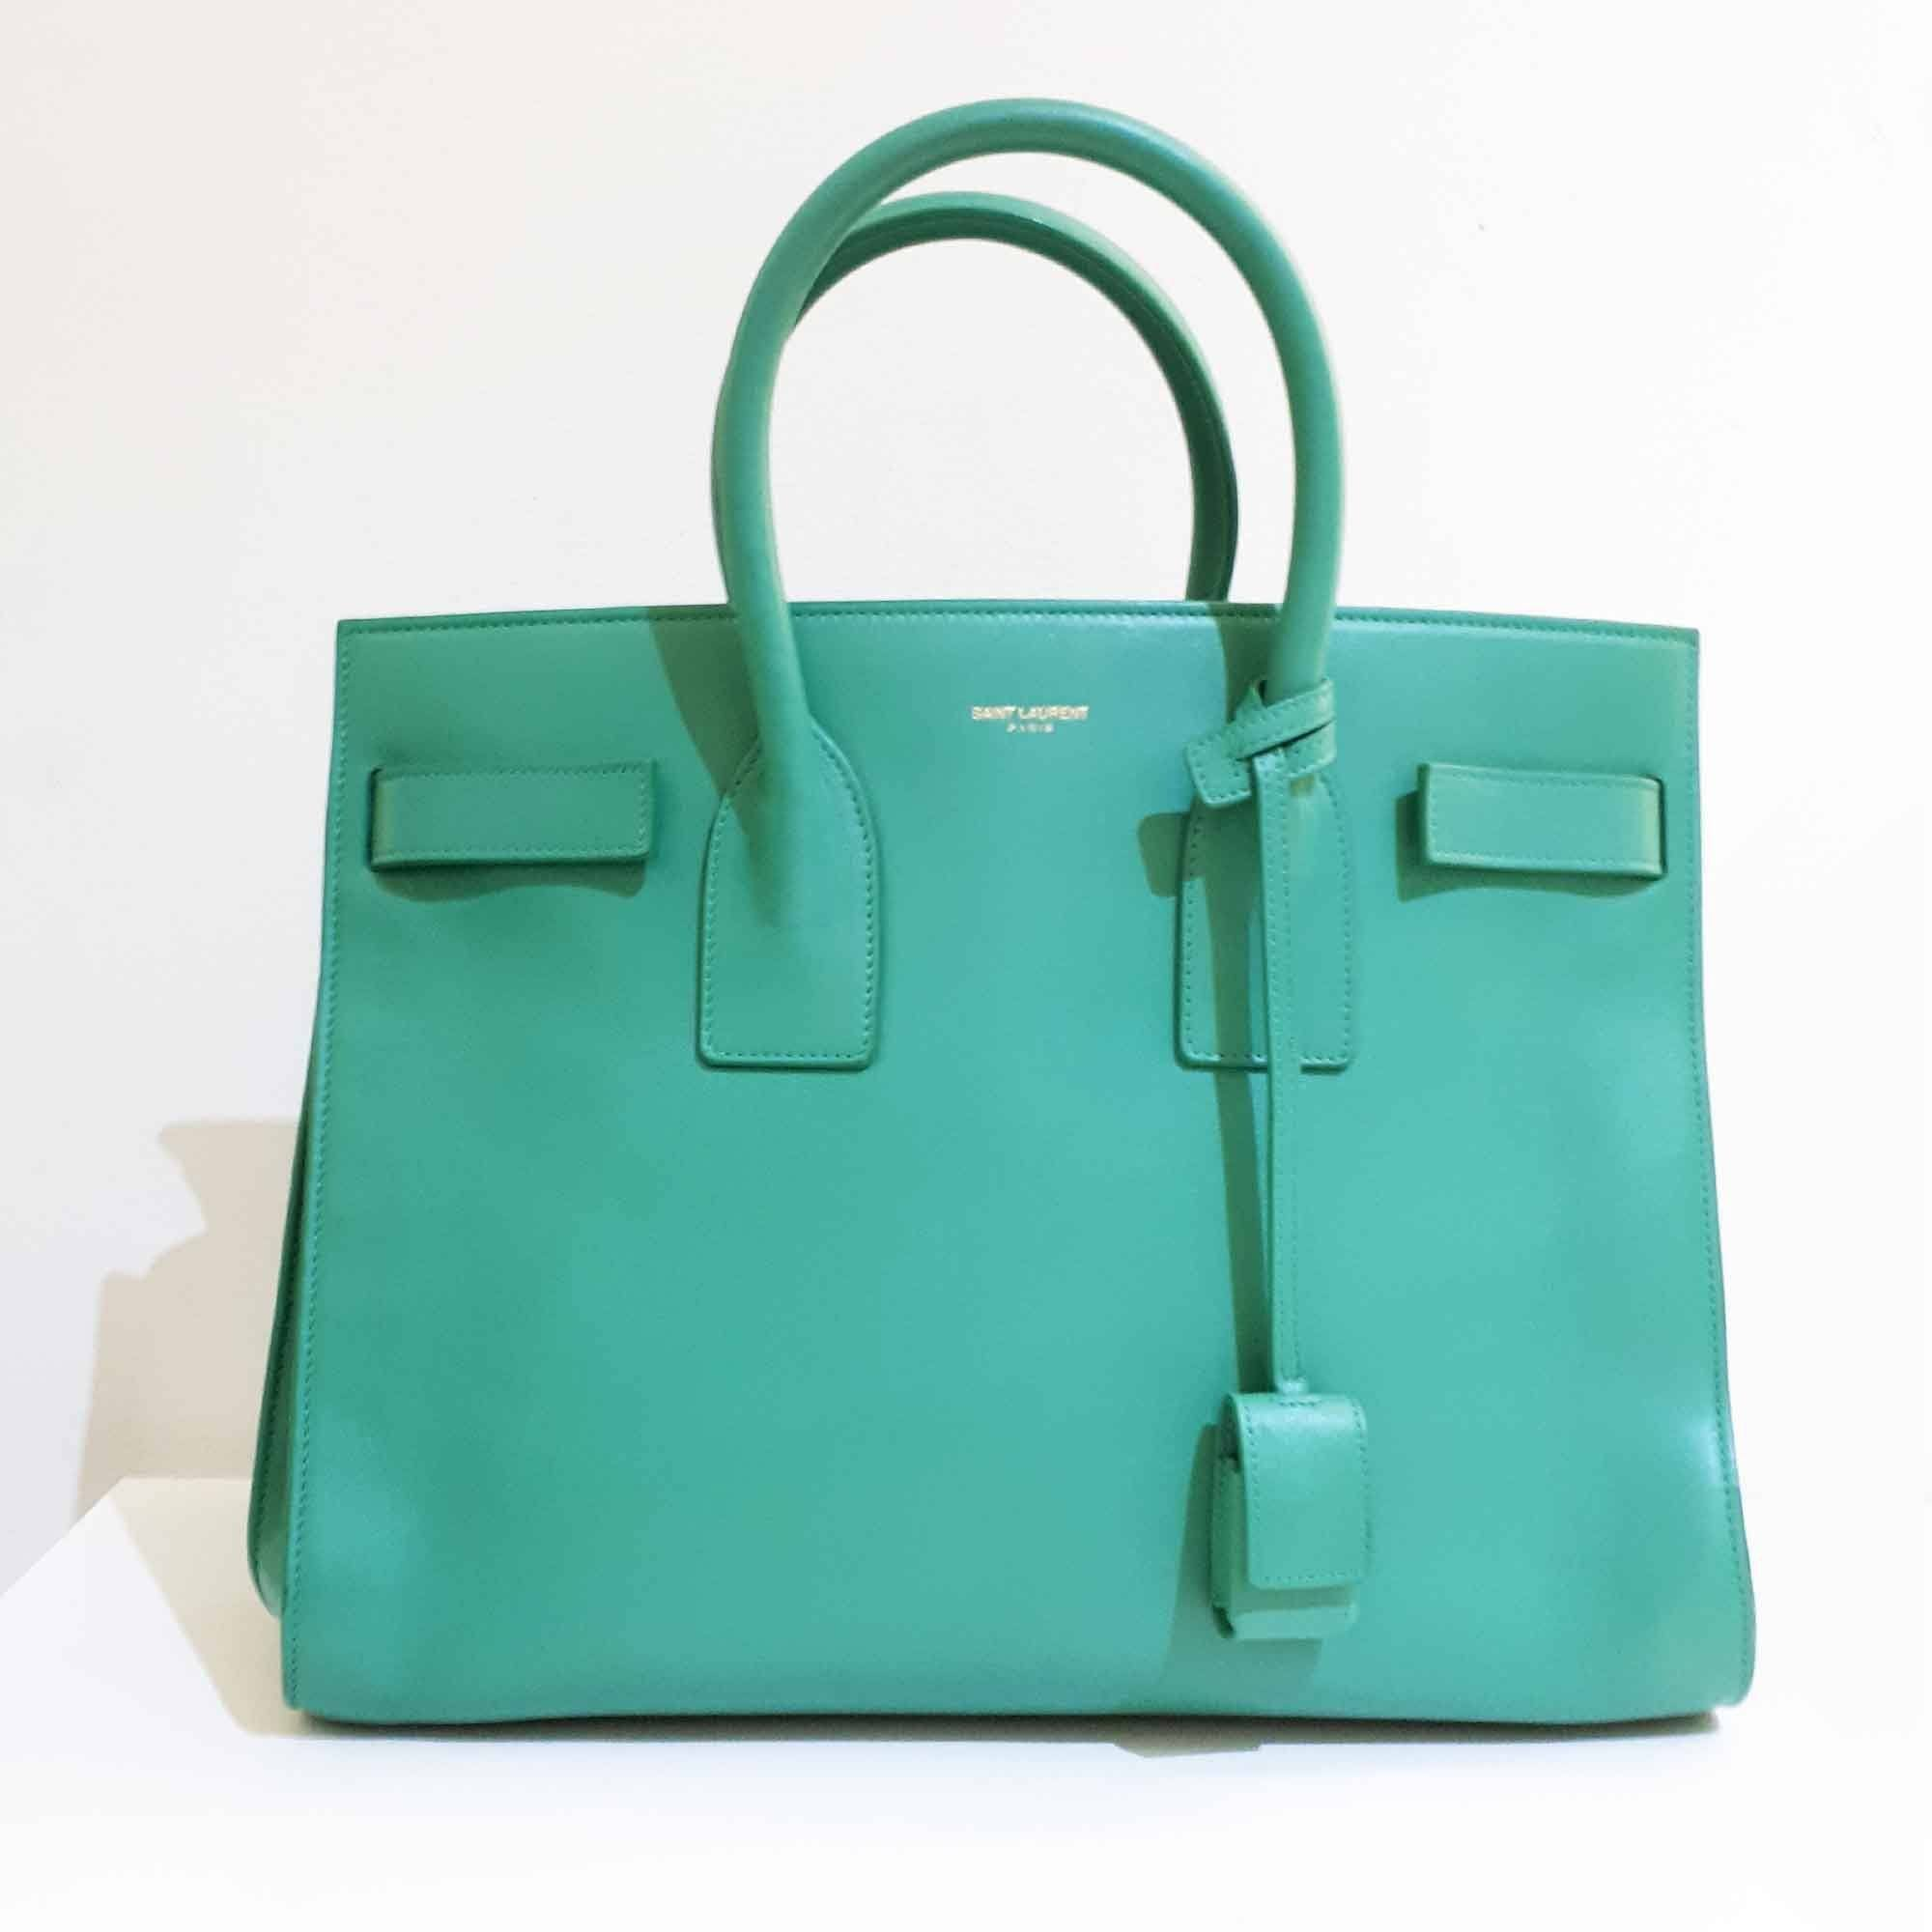 Saint Laurent Mint Green Sac de Jour